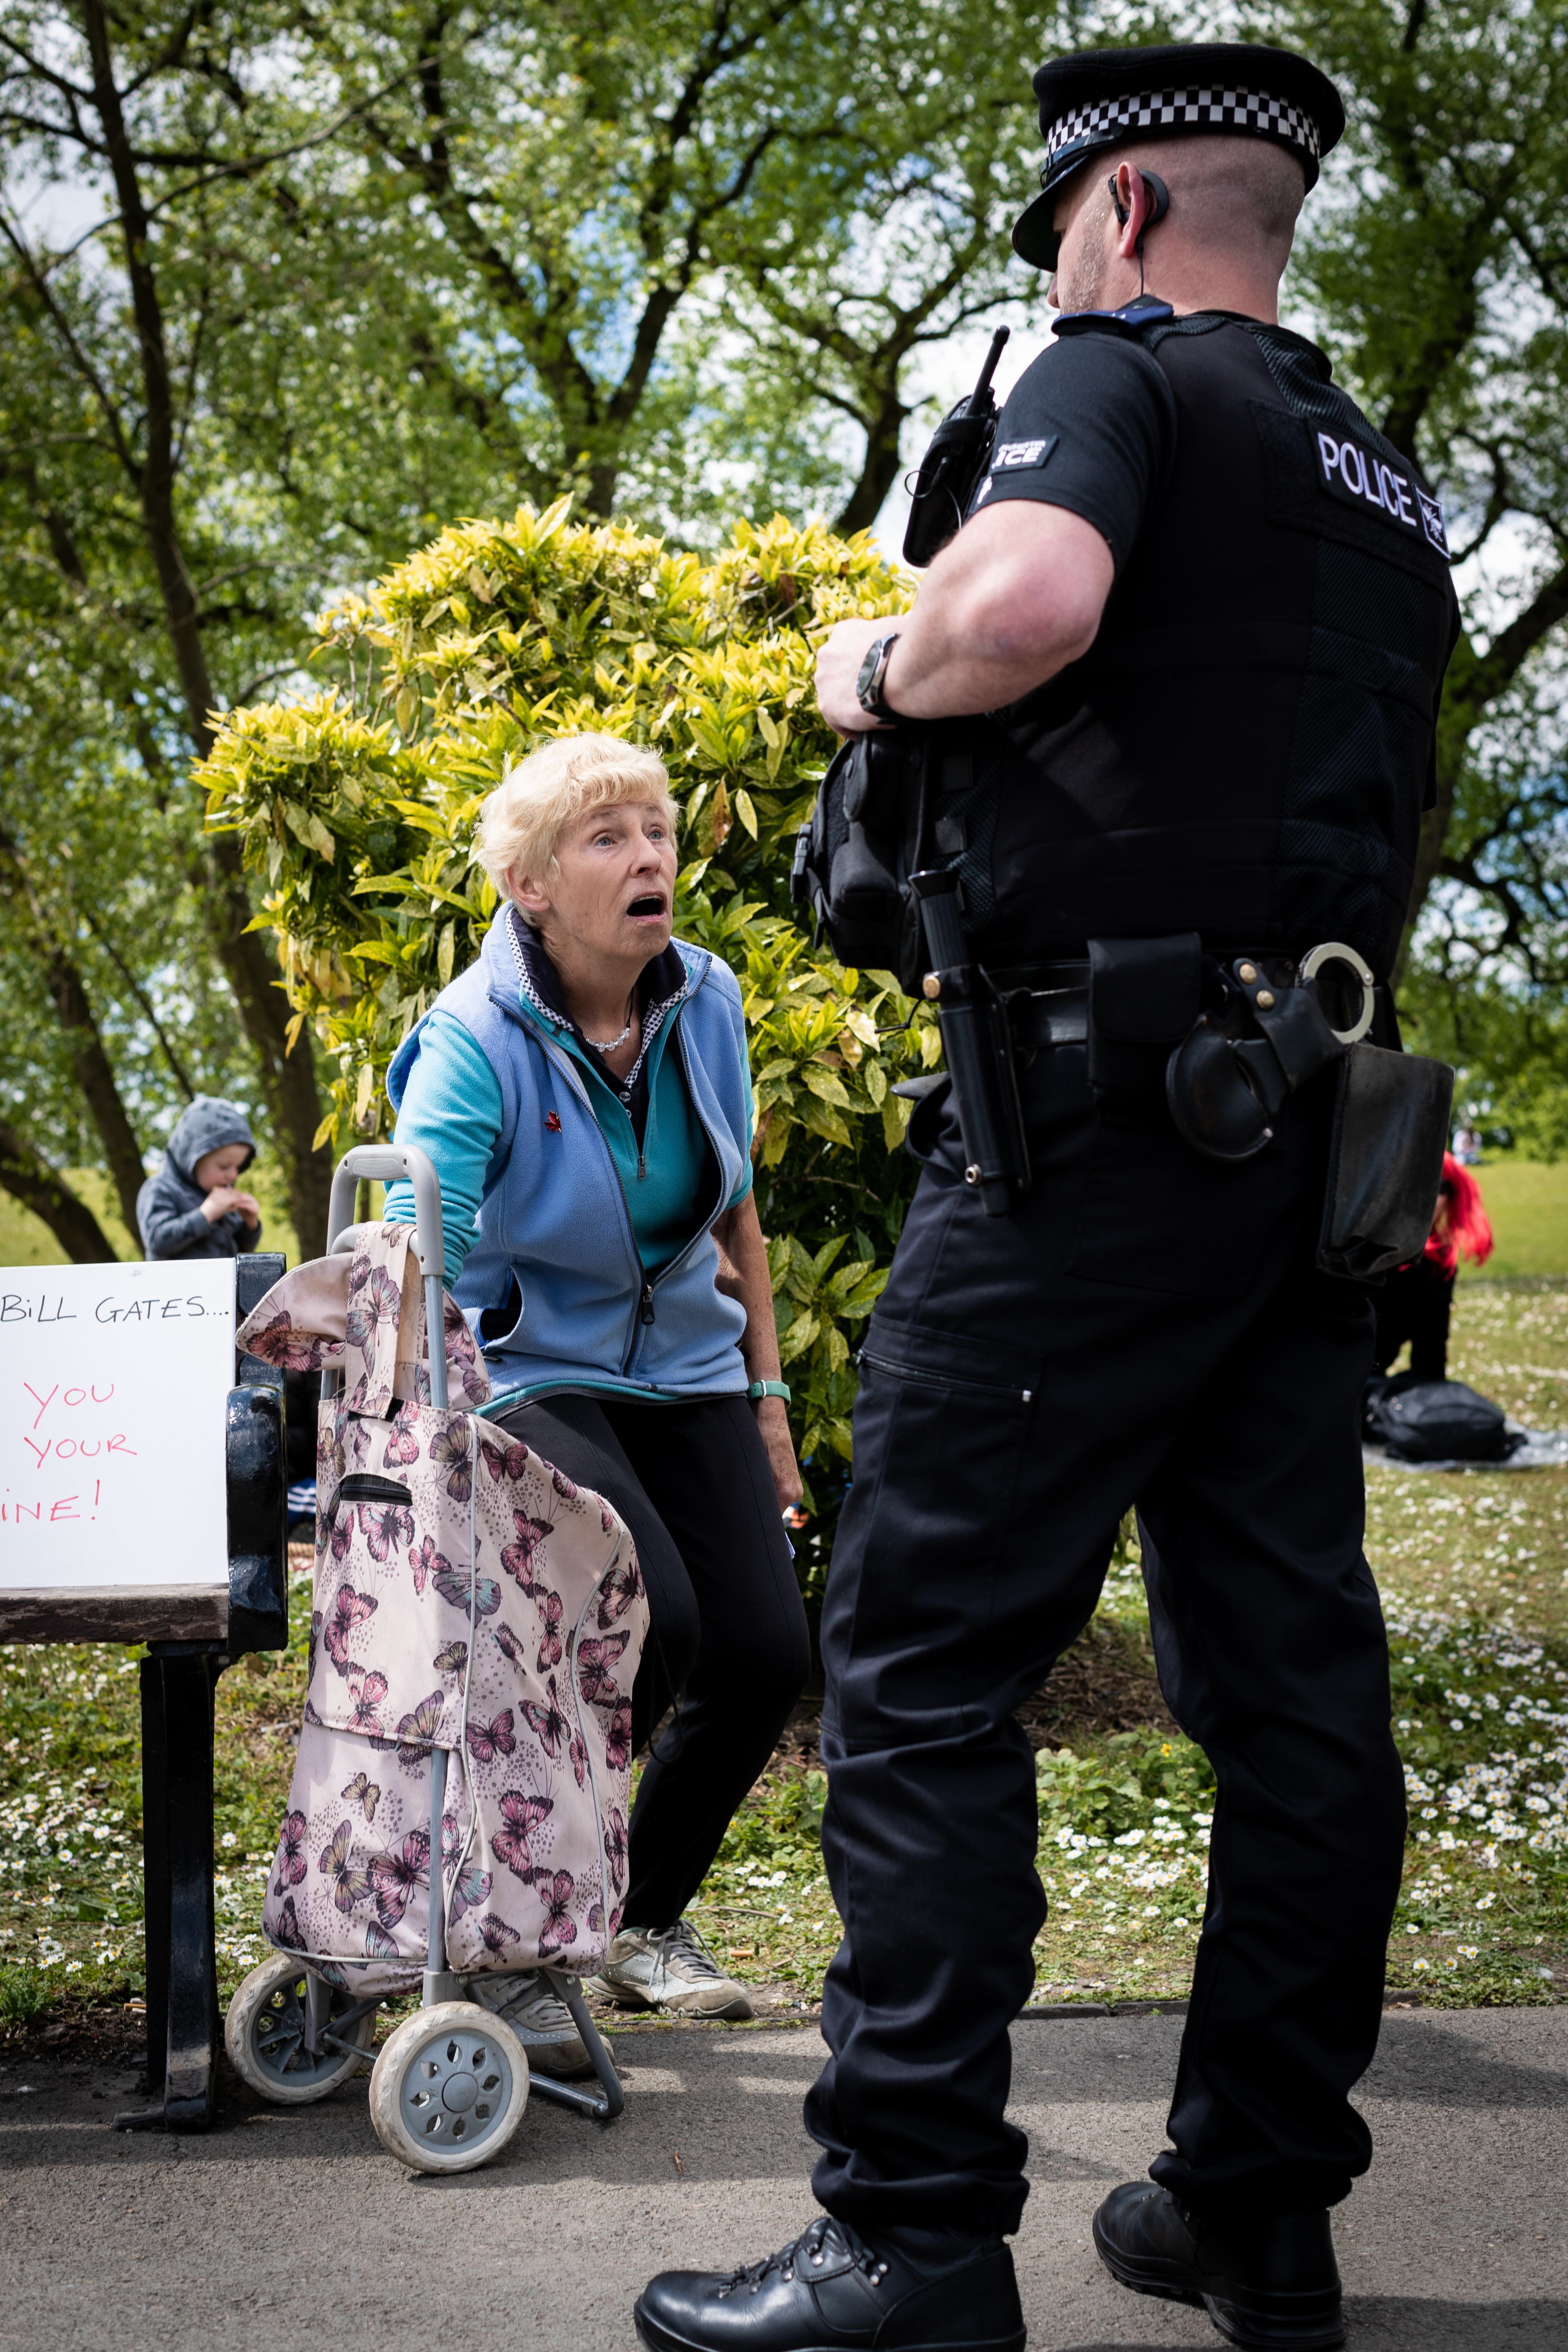 Penny seen speaking to a police officer after travelling to the city to raise her concerns about the lockdown and the proposed actions that may come due to the coronavirus. The UK Freedom Movement organised Mass Gathering events all around the country to protest against the unlawful lockdown due to the COVID-19 pandemic. (Photo by Andy Barton / SOPA Images/Sipa USA)